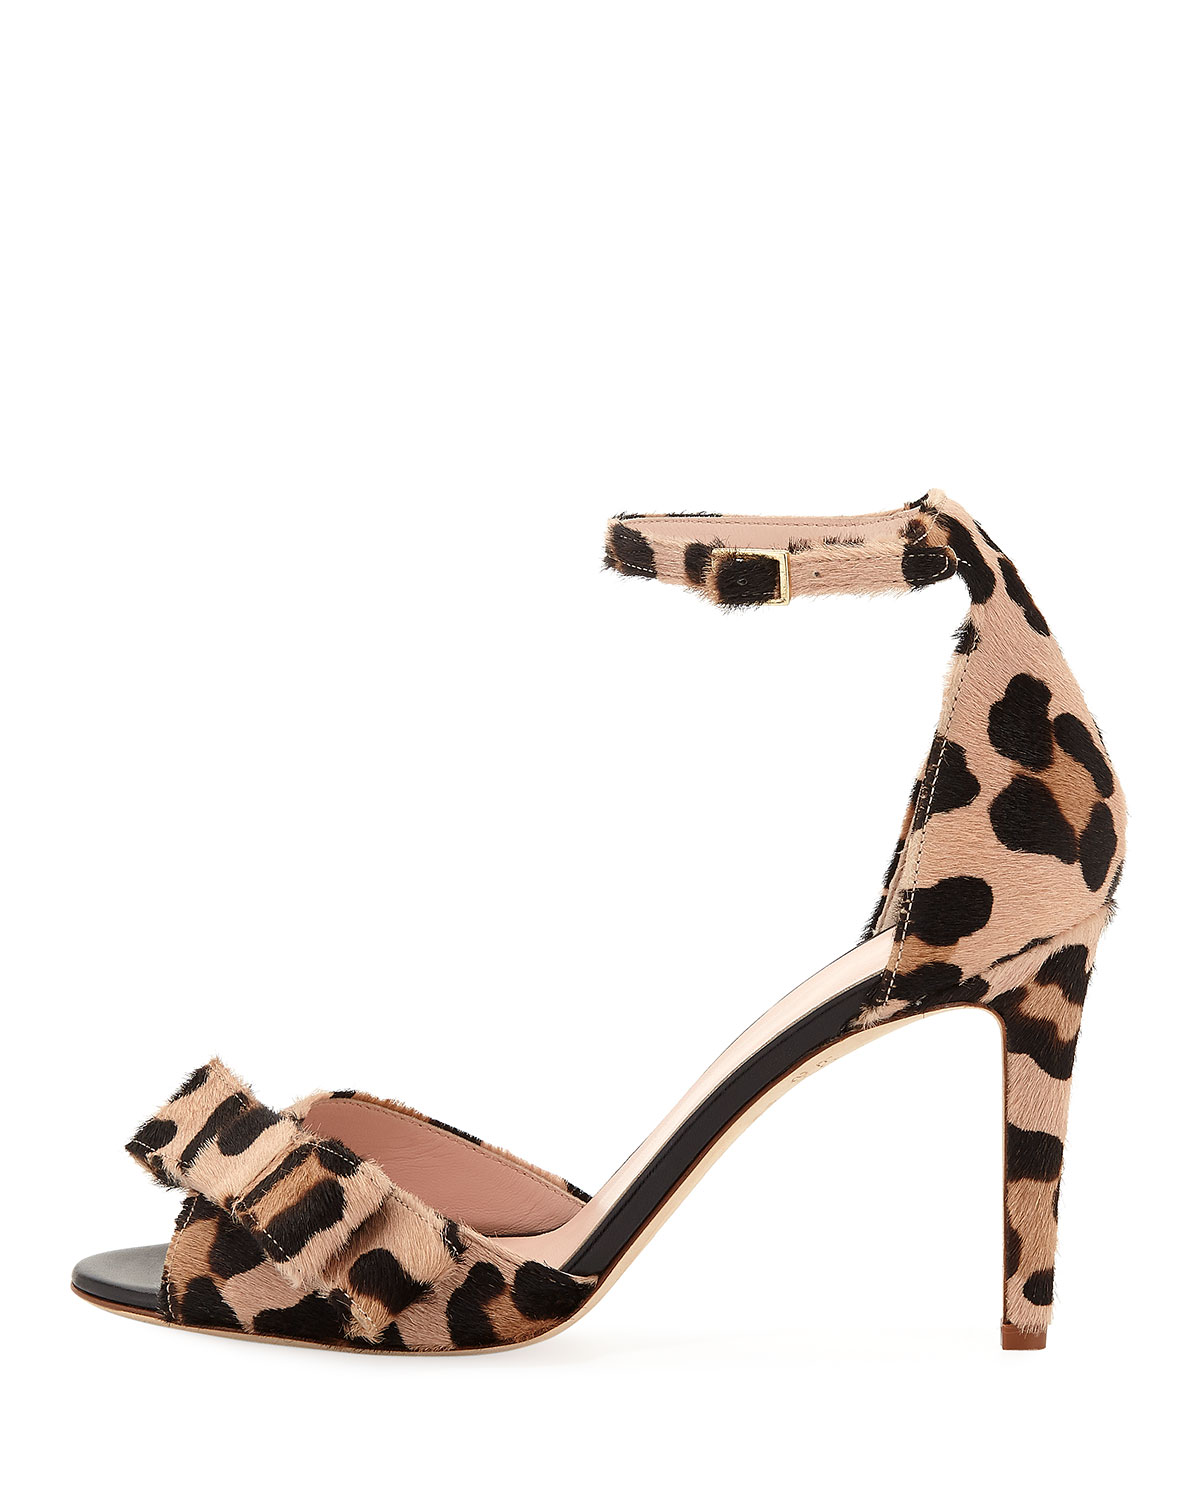 0df26cea78a9 Kate Spade New York ismay leopard bow pumps